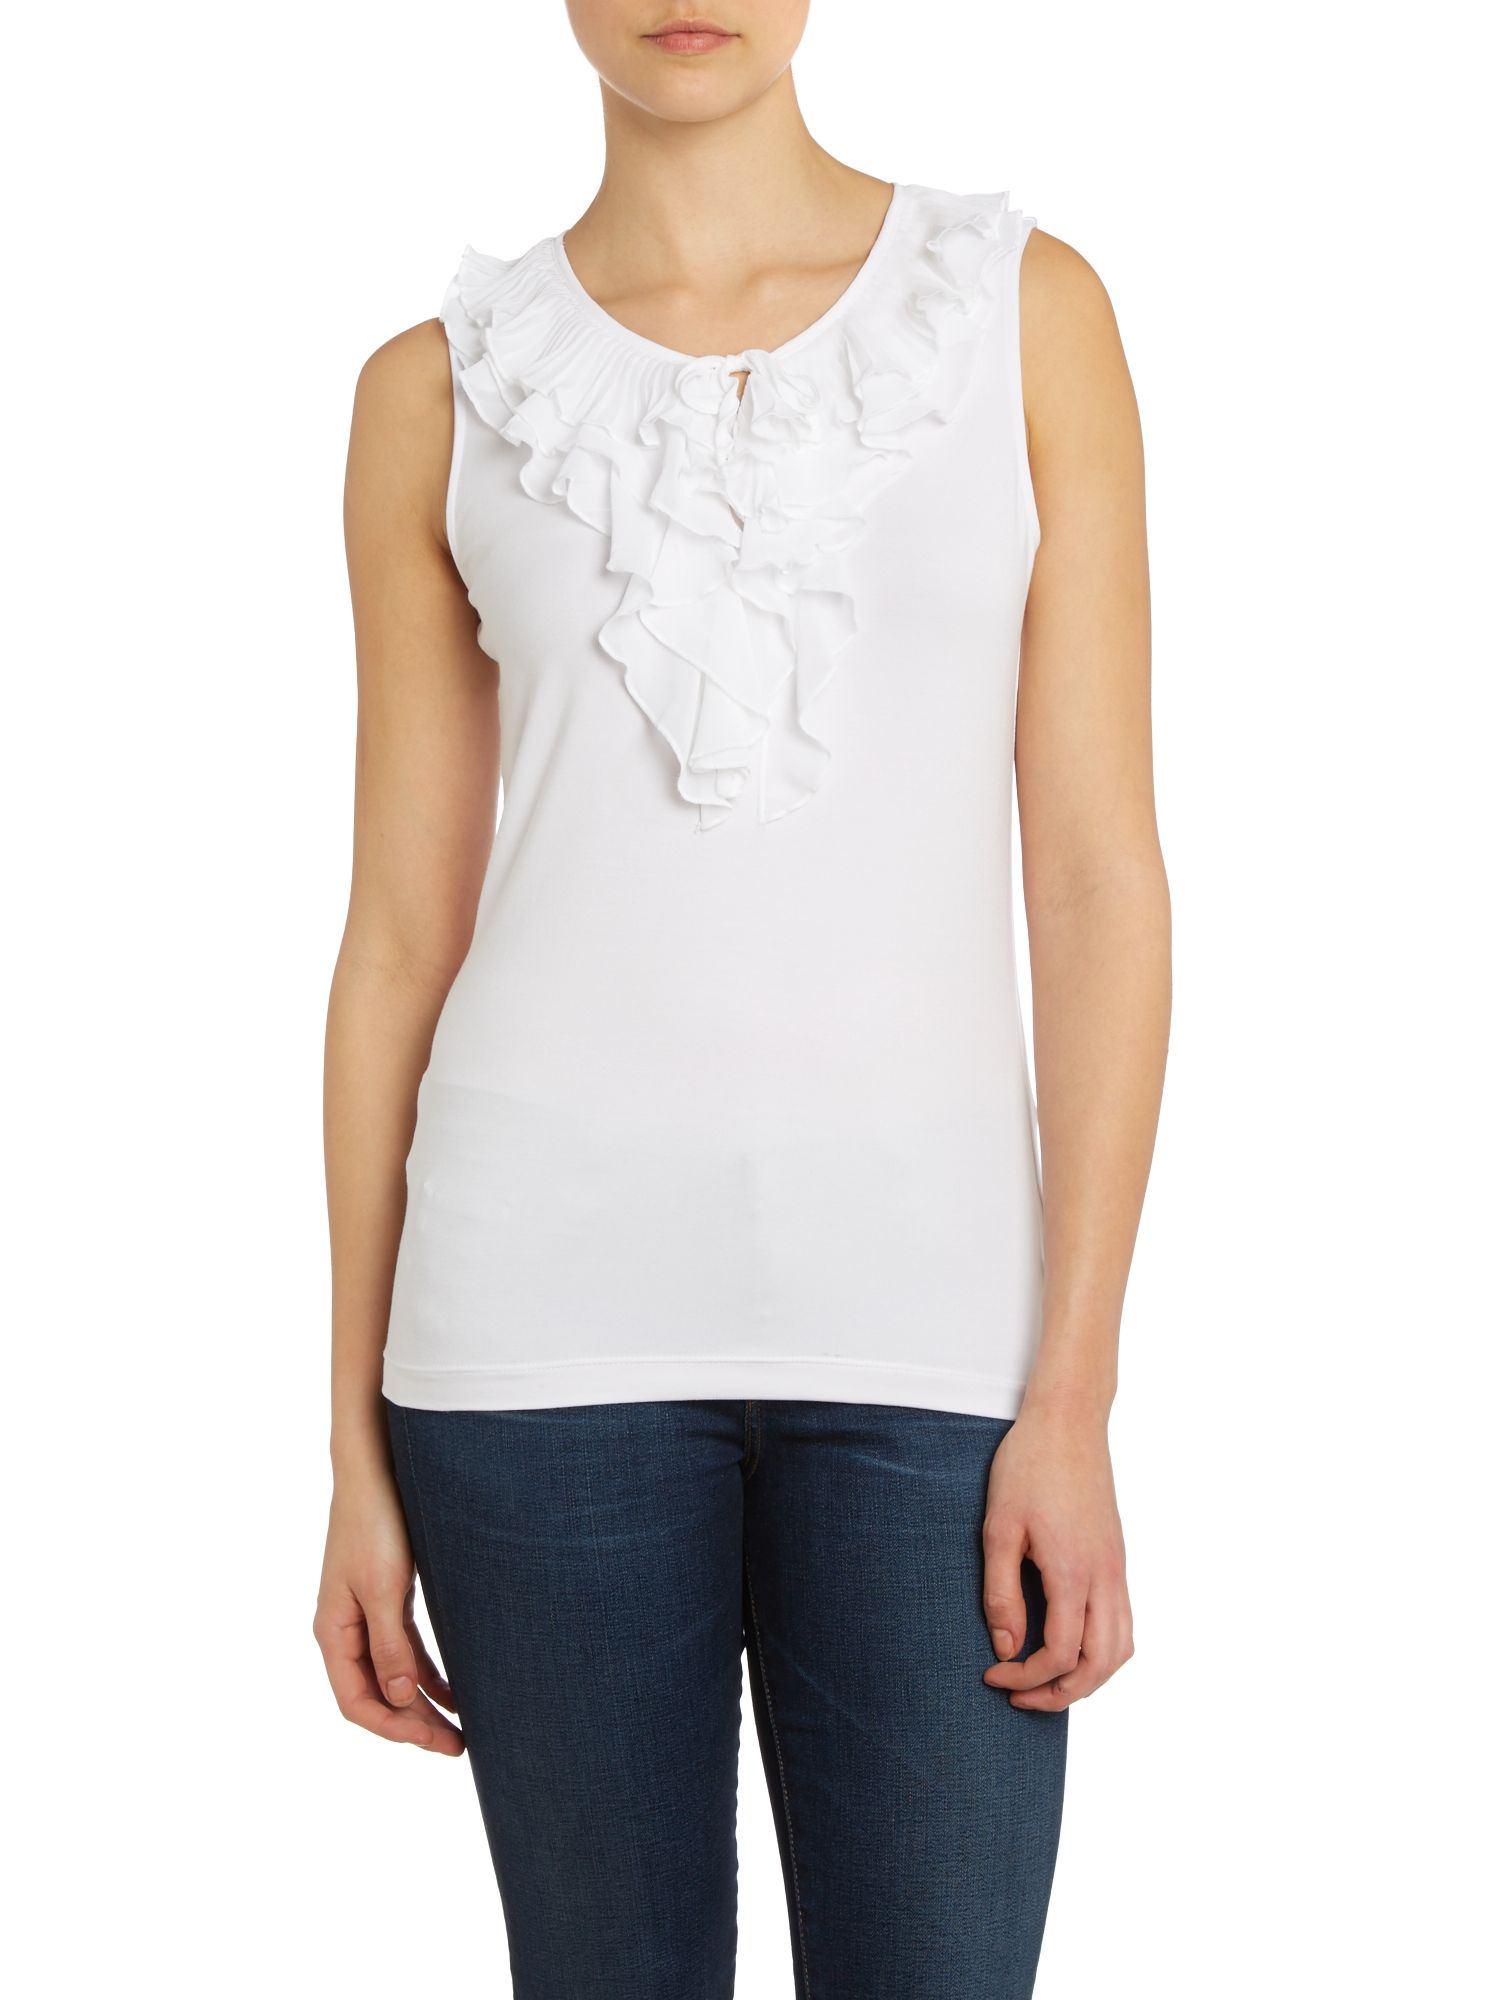 Ruffle front short sleeved top